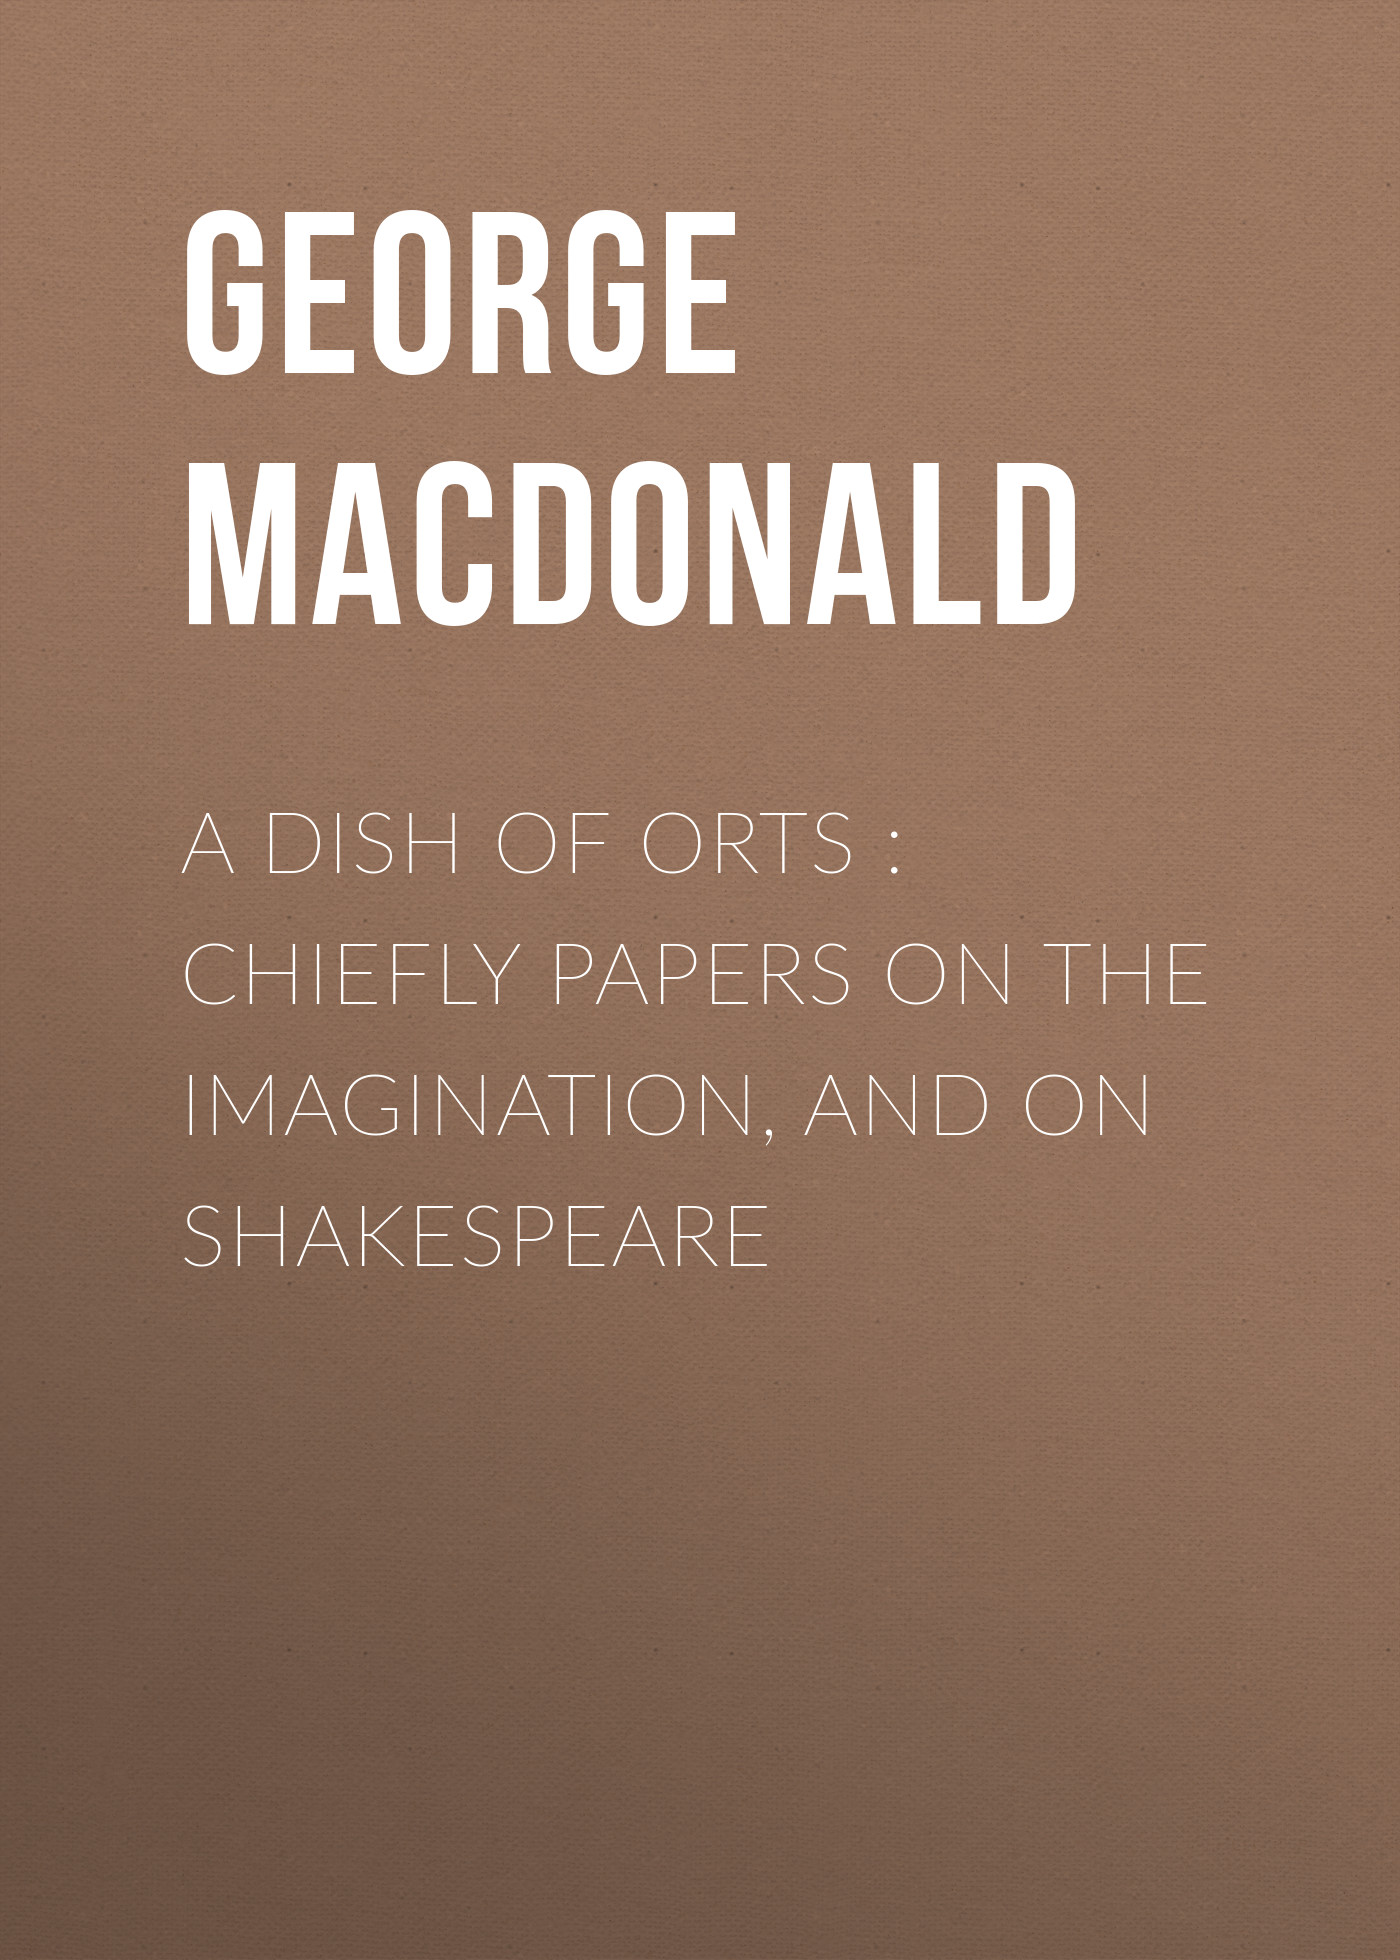 George MacDonald A Dish of Orts : Chiefly Papers on the Imagination, and on Shakespeare george macdonald miracles of our lord